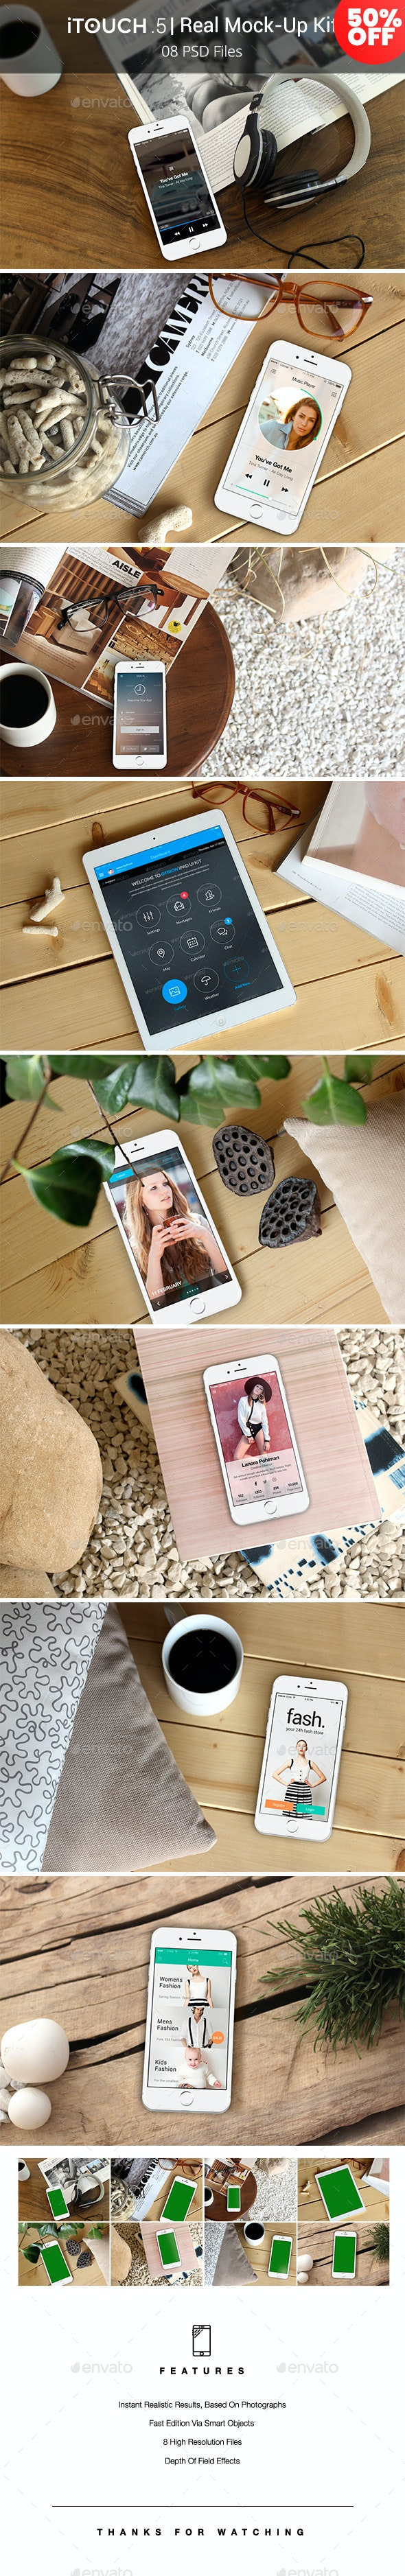 iTouch 5 | 08 Photorealistic MockUp - Mobile Displays